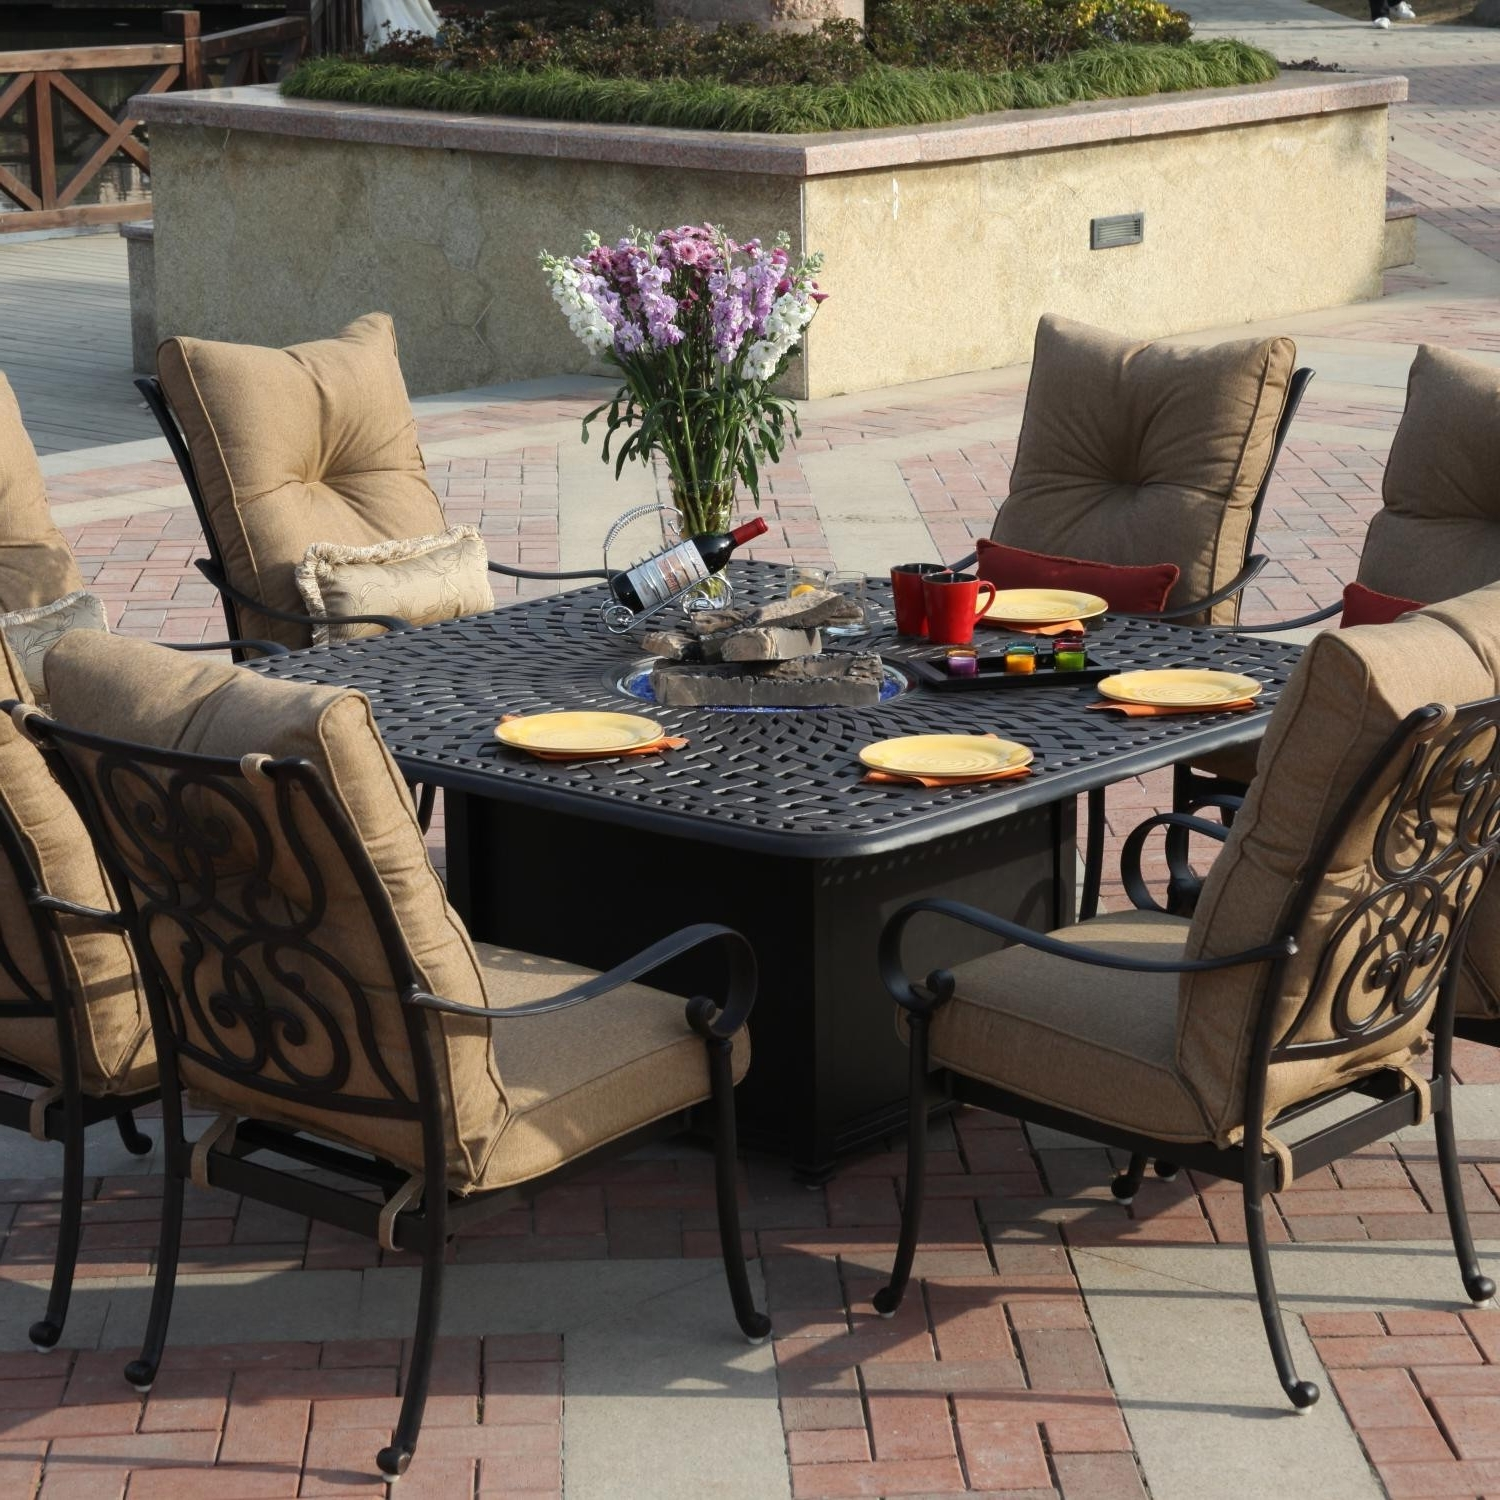 New Wicker Patio Sets With Fire Pit Conversation Sets Fire Pit Table In Most Recent Patio Conversation Sets With Fire Pit Table (View 8 of 15)